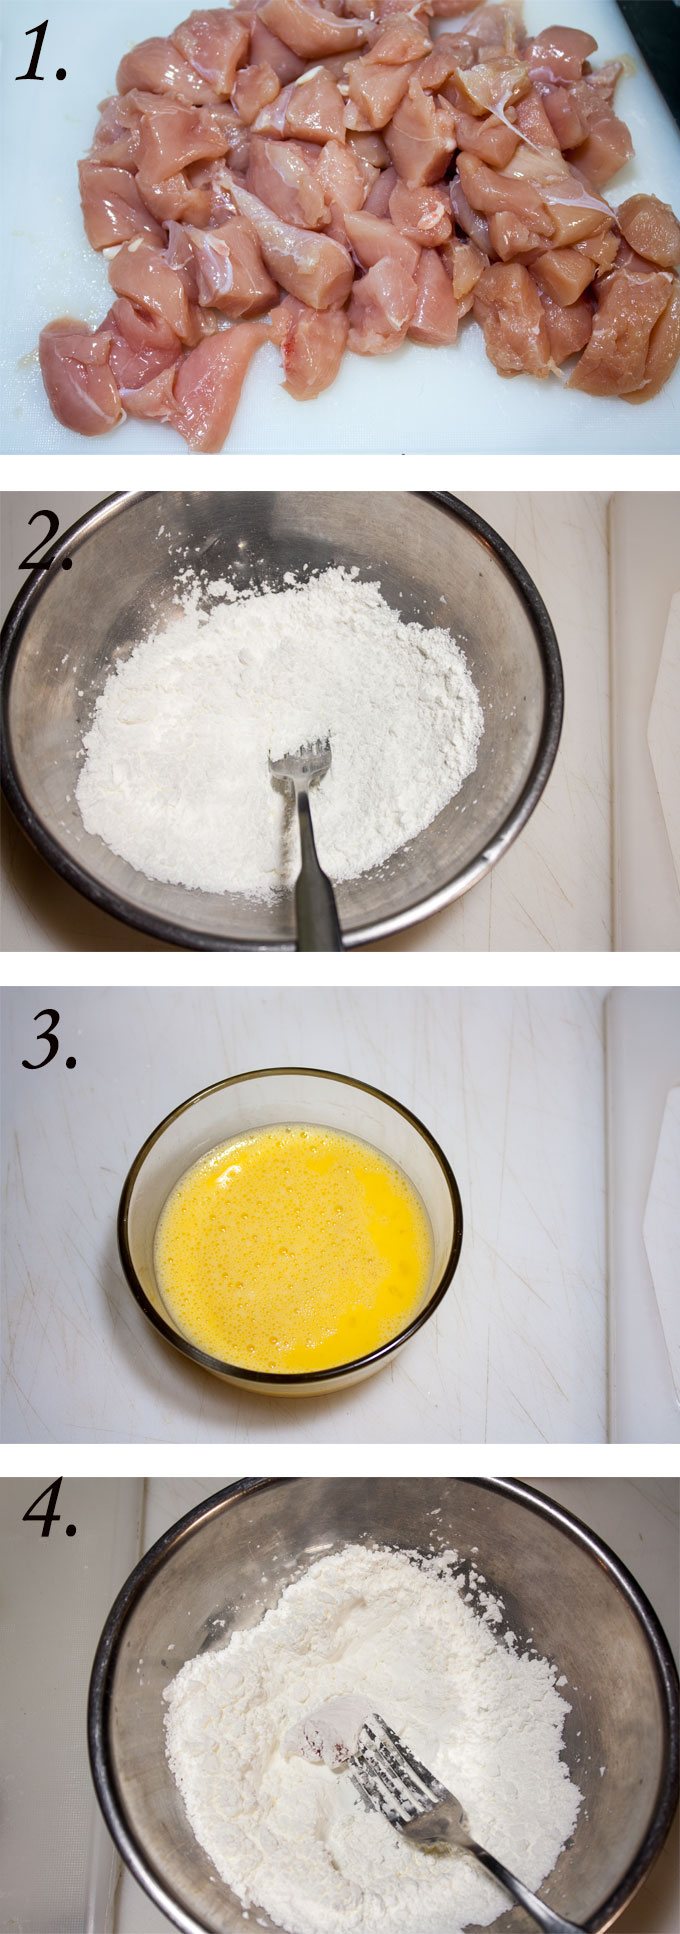 sweet and sour chicken recipe process photographs